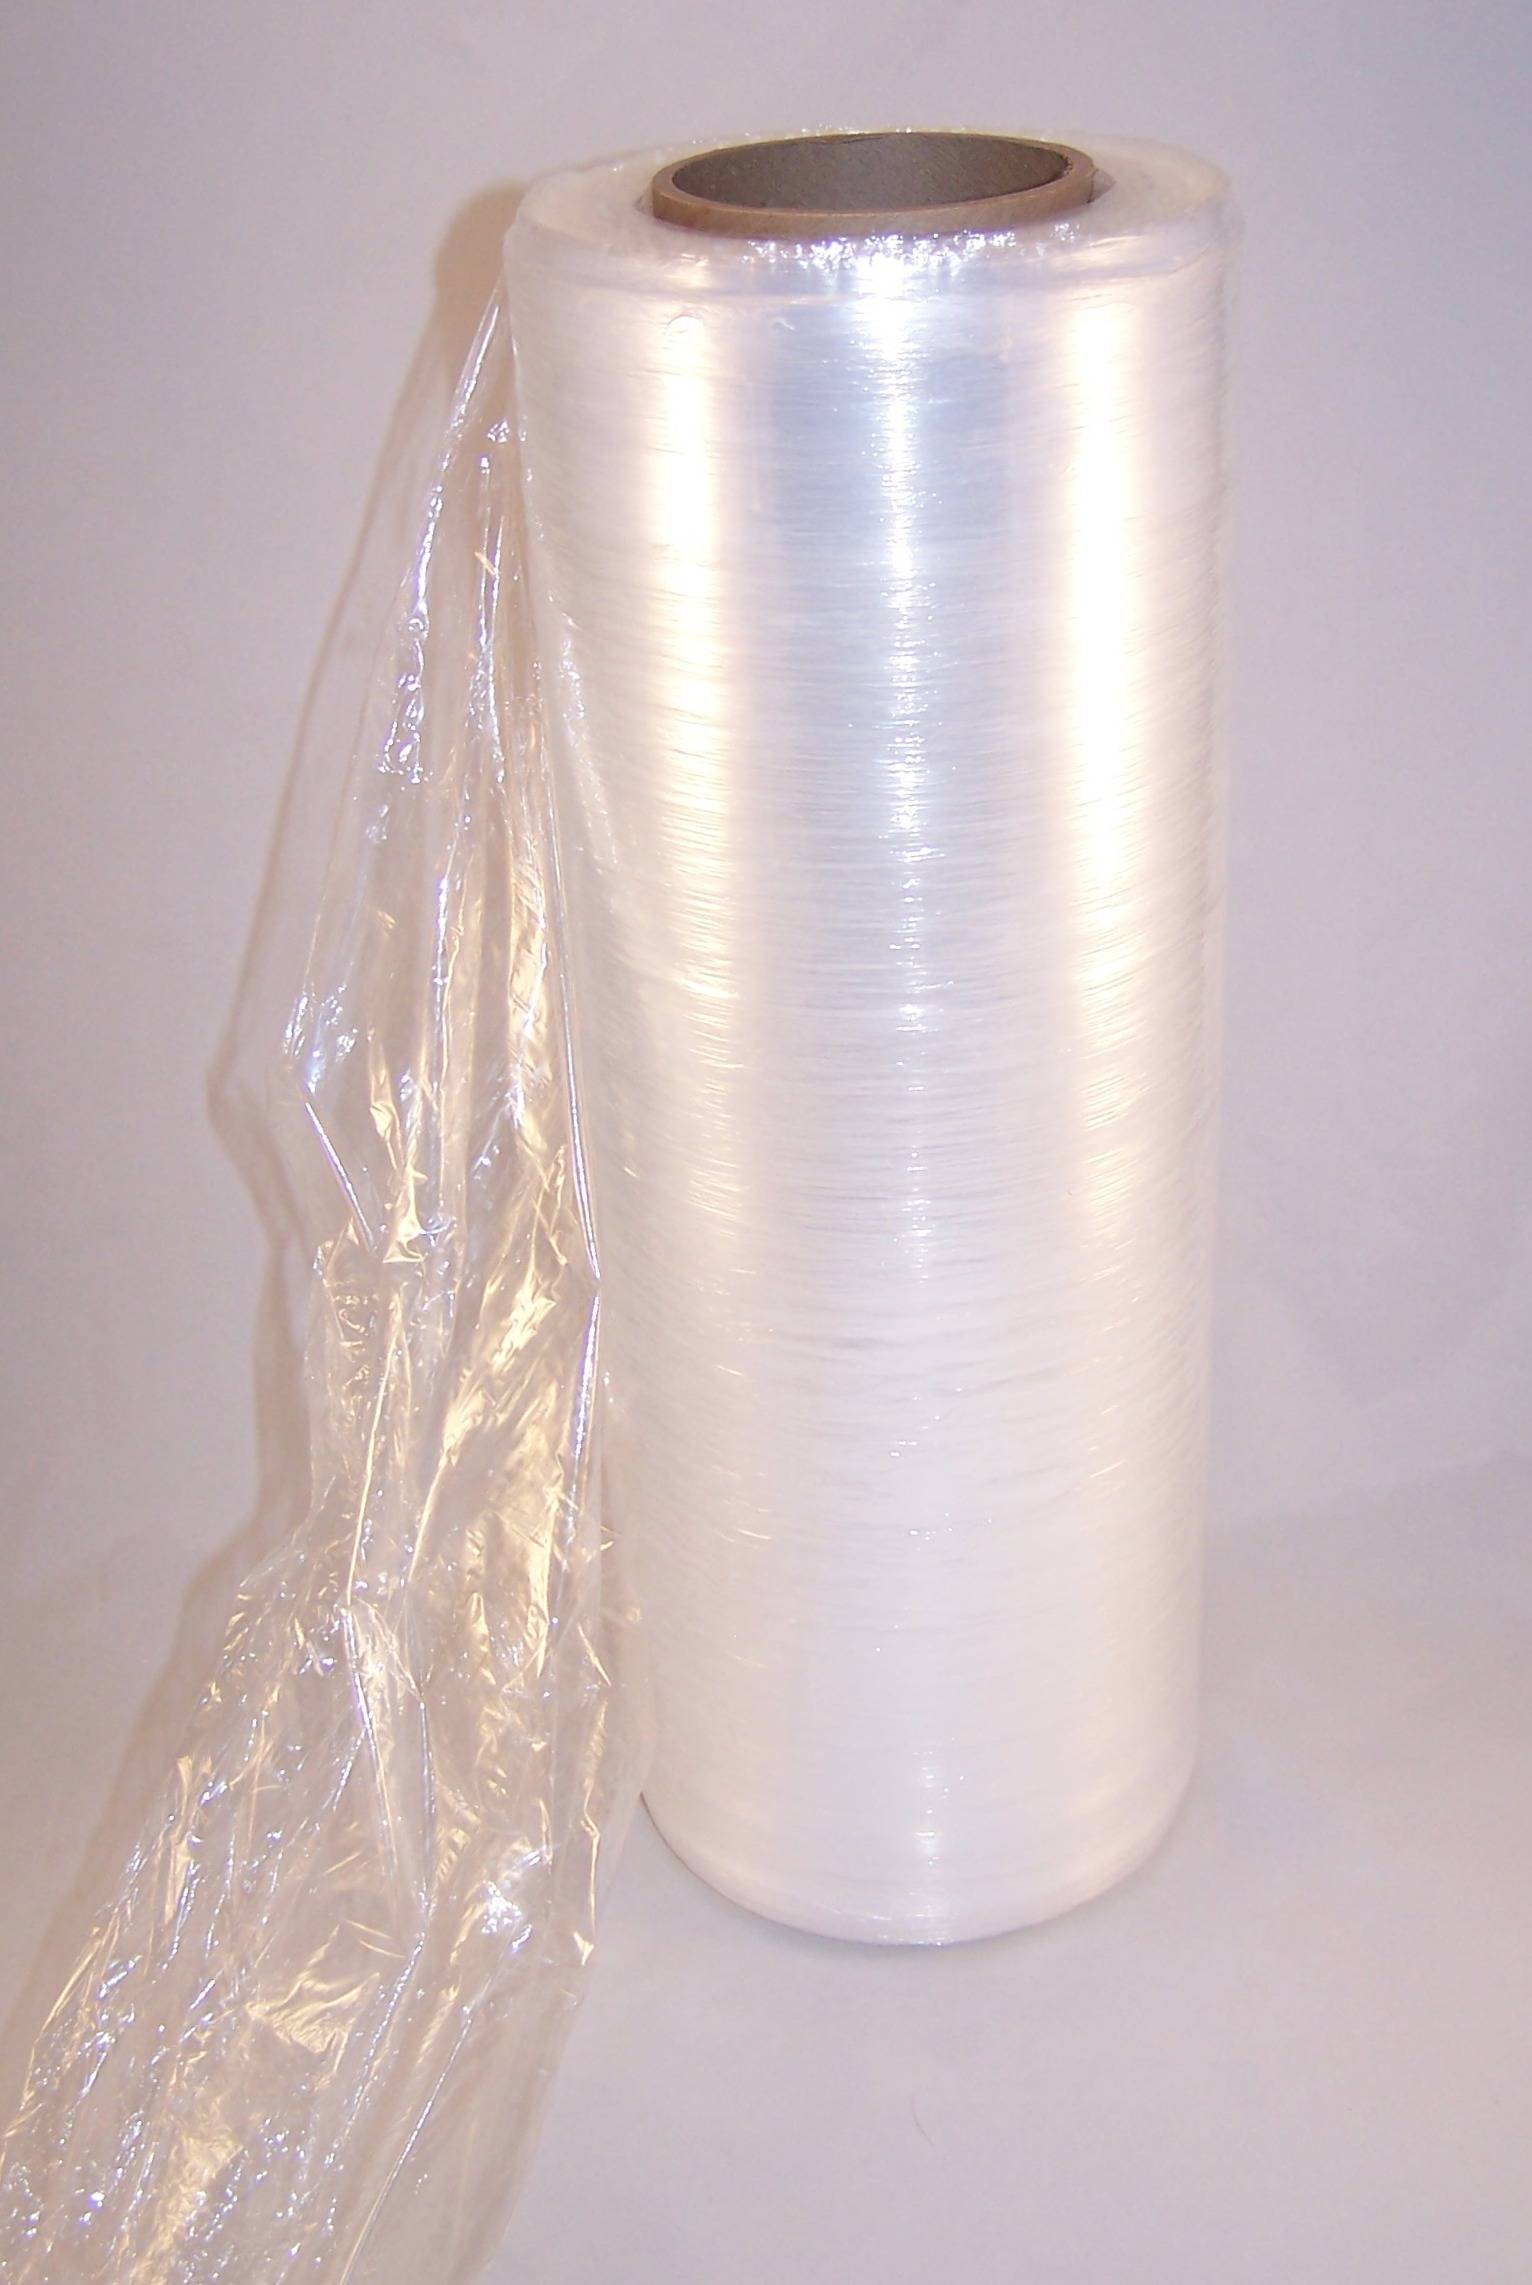 Paragon Wrap 18 Quot X 1500ft Roll 0 80 Mil Clr Stretch Film